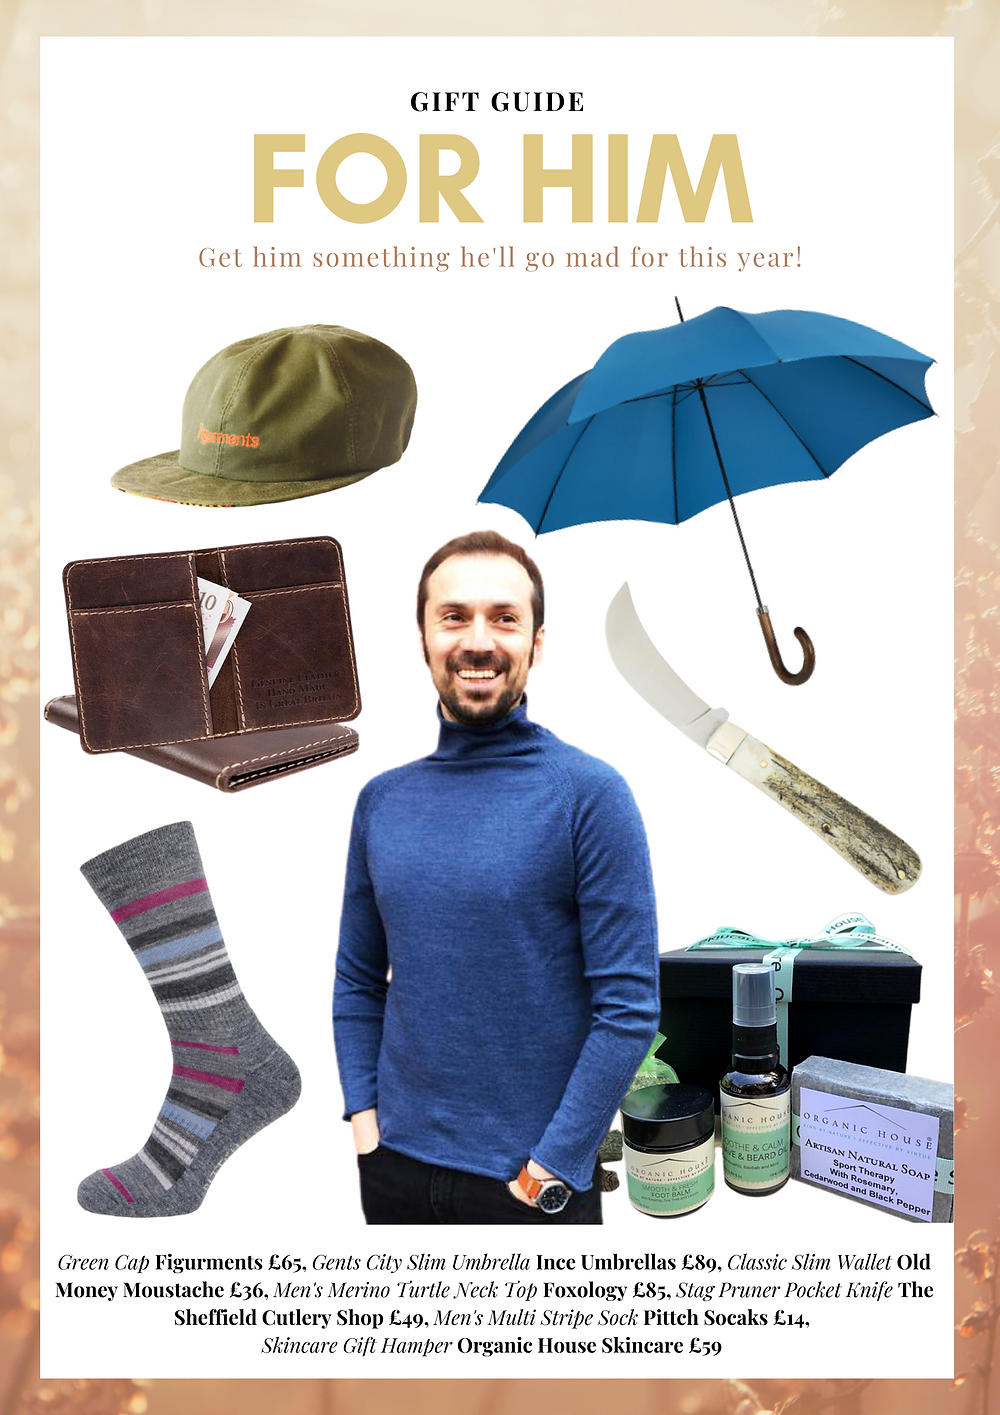 Gift Guide for him - Christmas 2020